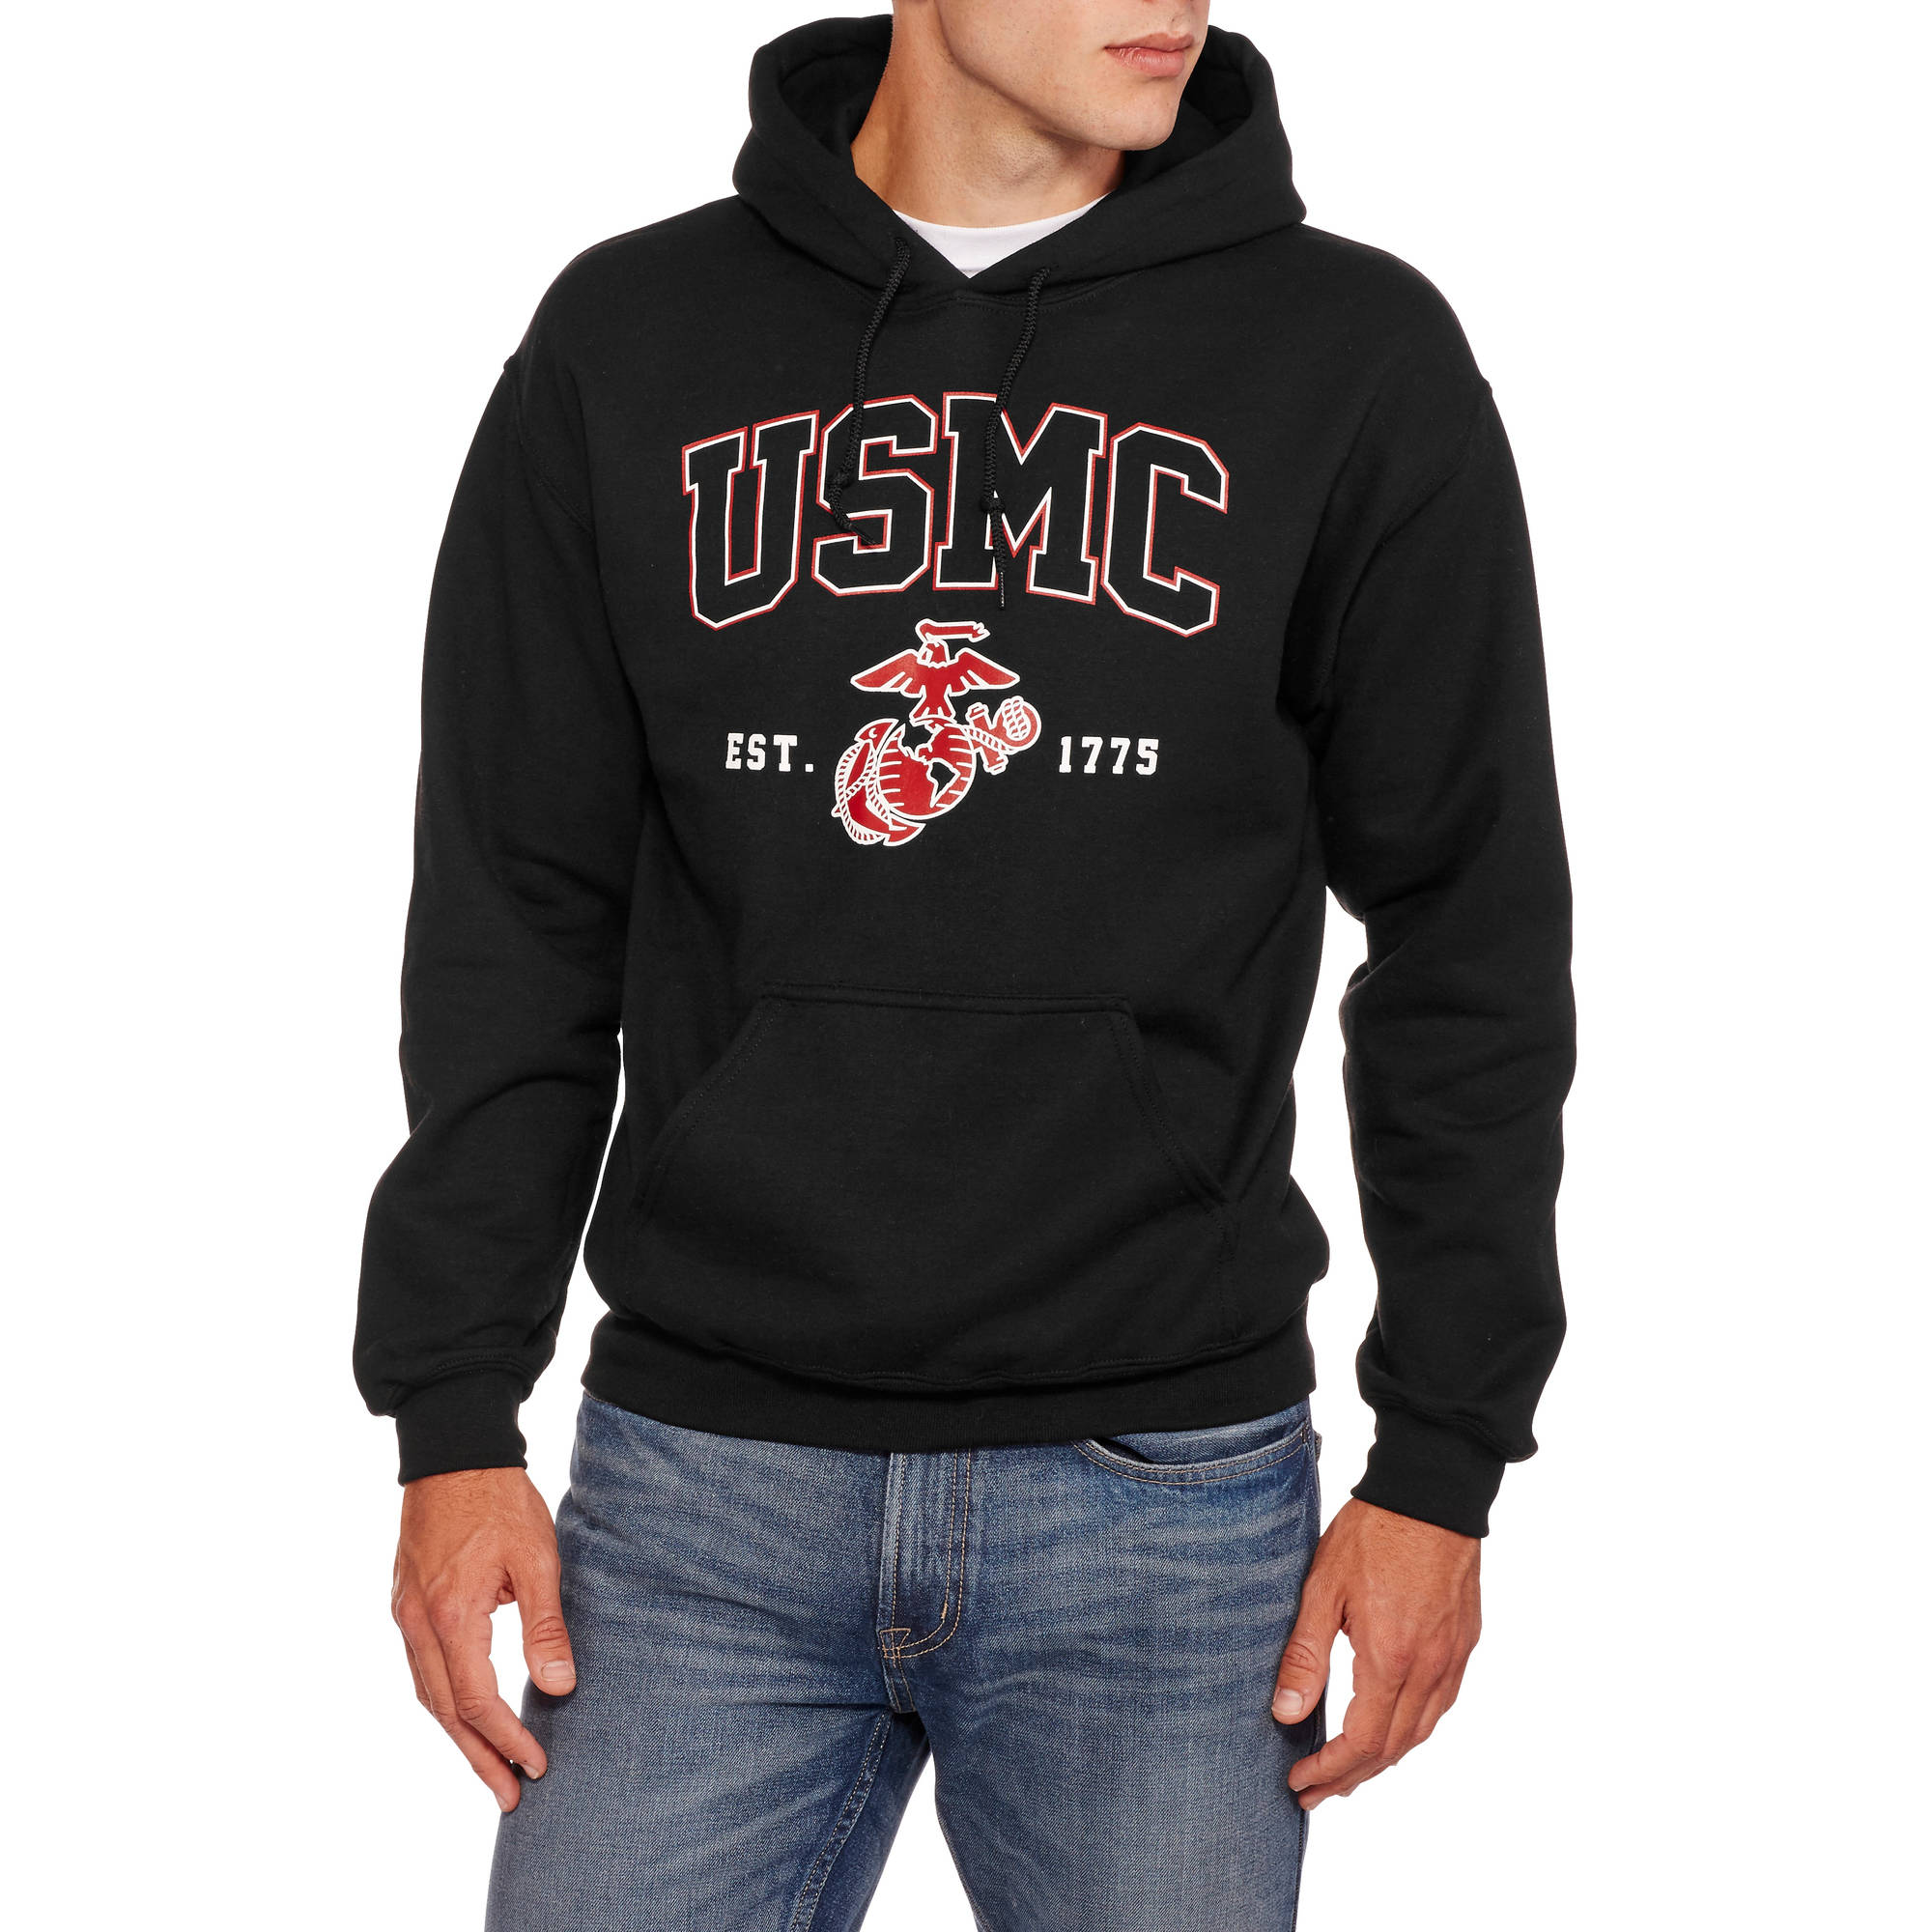 Military Officially Licensed Big Men's Marine Fleece Hoodie, 2XL